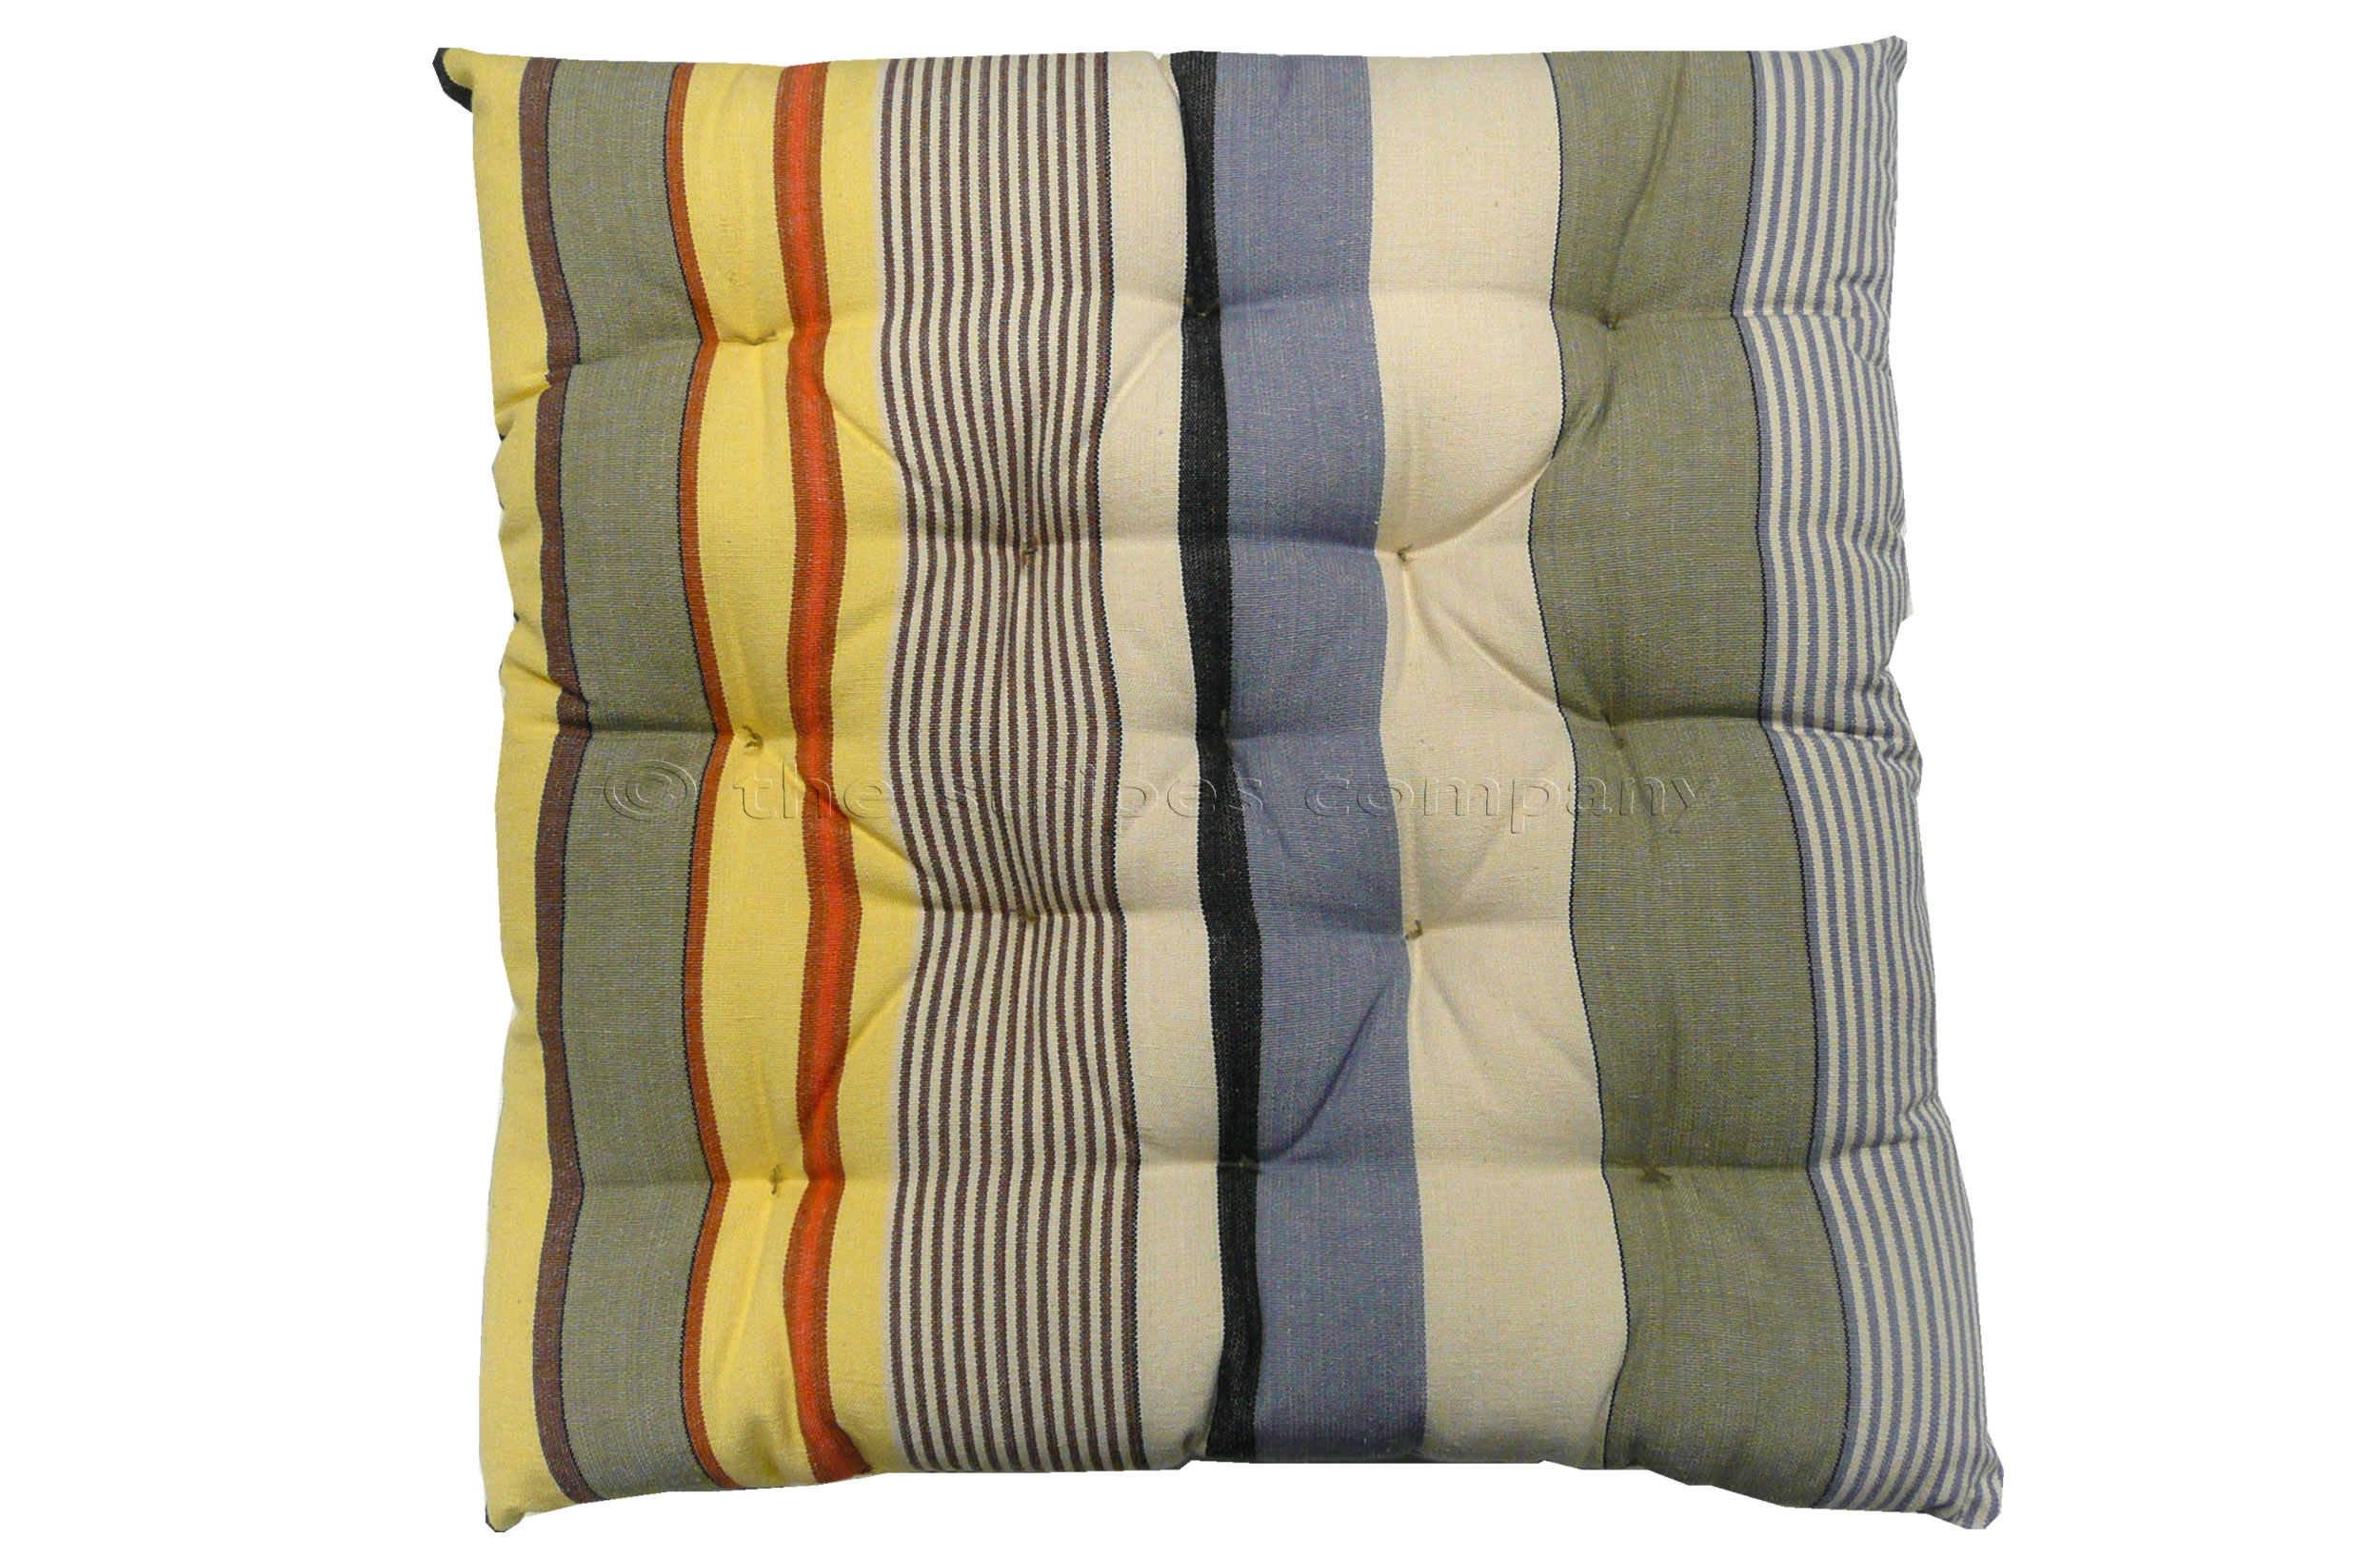 blue, beige, grey - Seat Pad Cushions | Striped Seat Pads